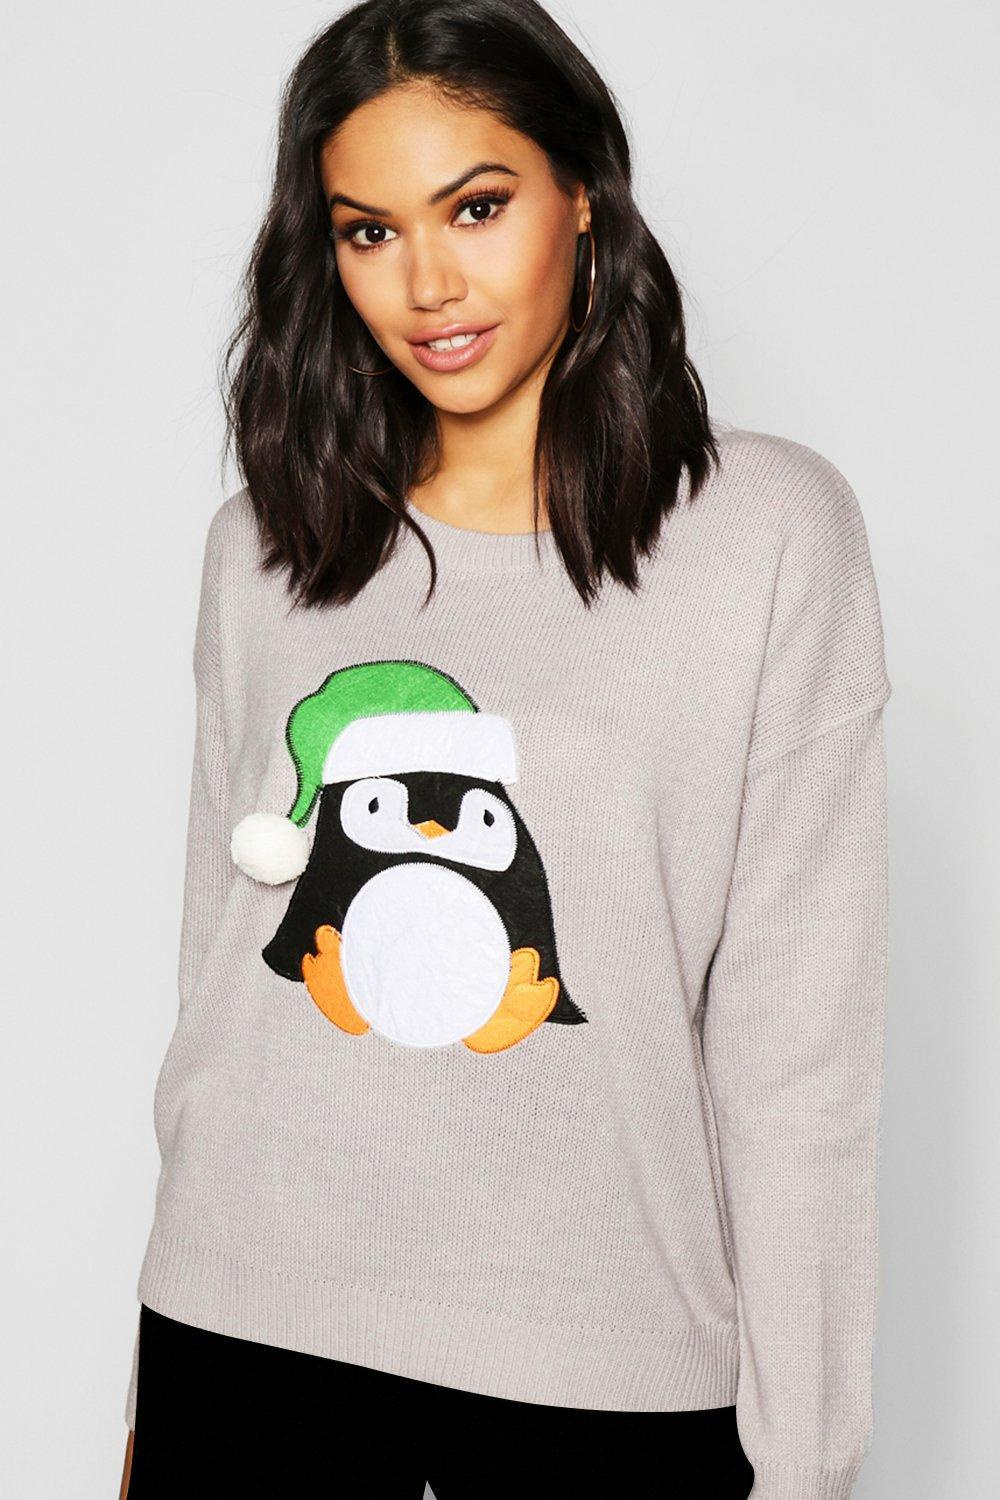 93e0a14d57c2f Boohoo Penguin Applique Jumper With Pom Pom in Gray - Save 10.0% - Lyst